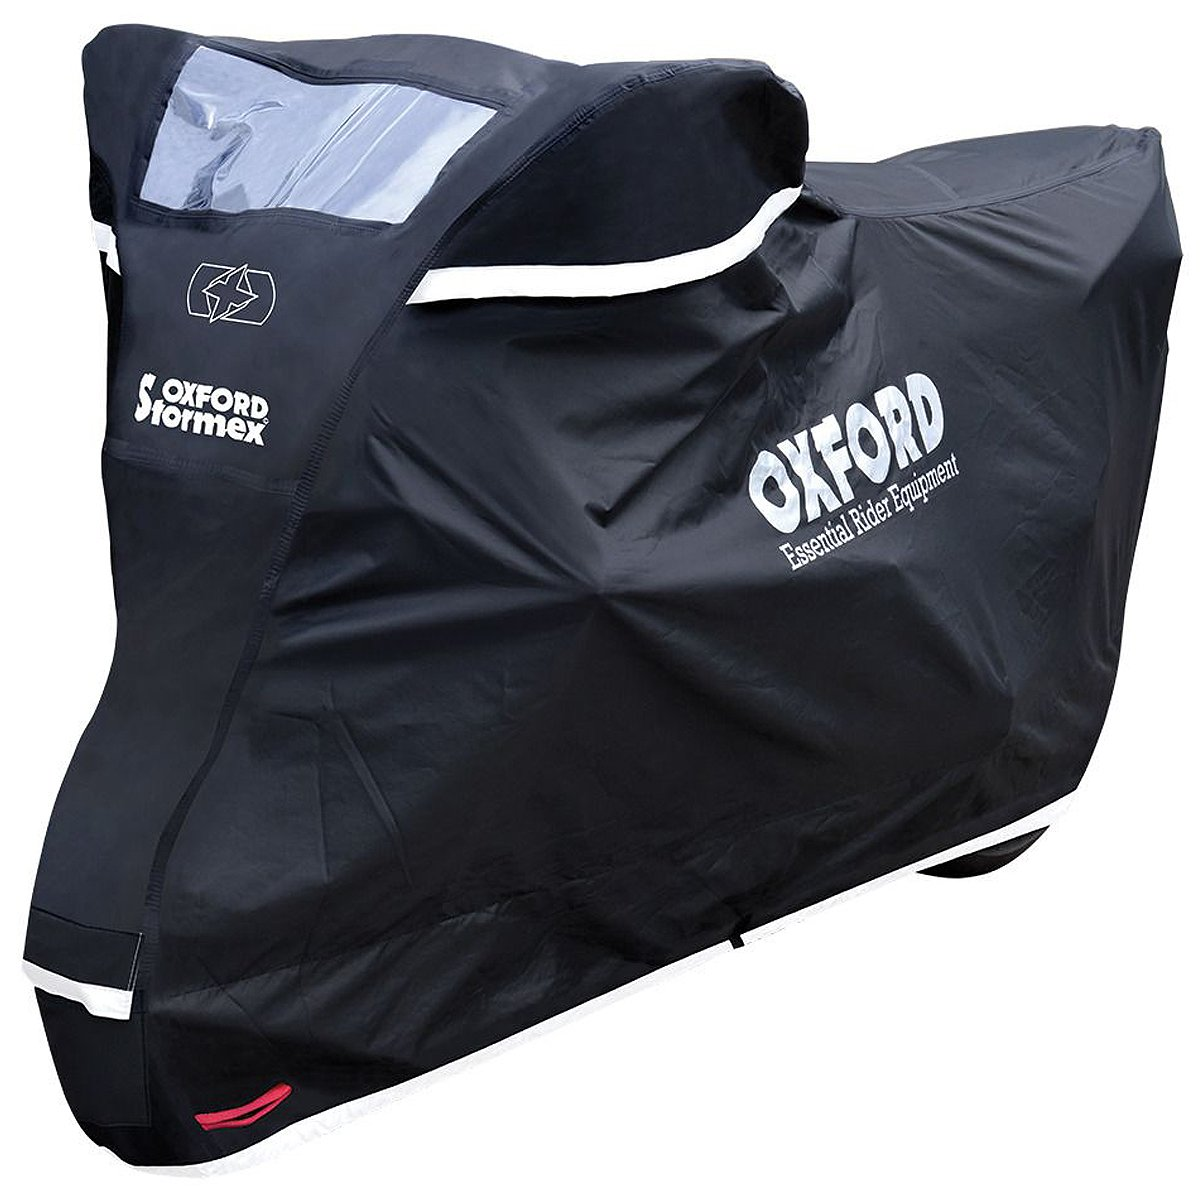 Oxford CV330 Stormex motorcycle cover, small (OF142) 5030009342301